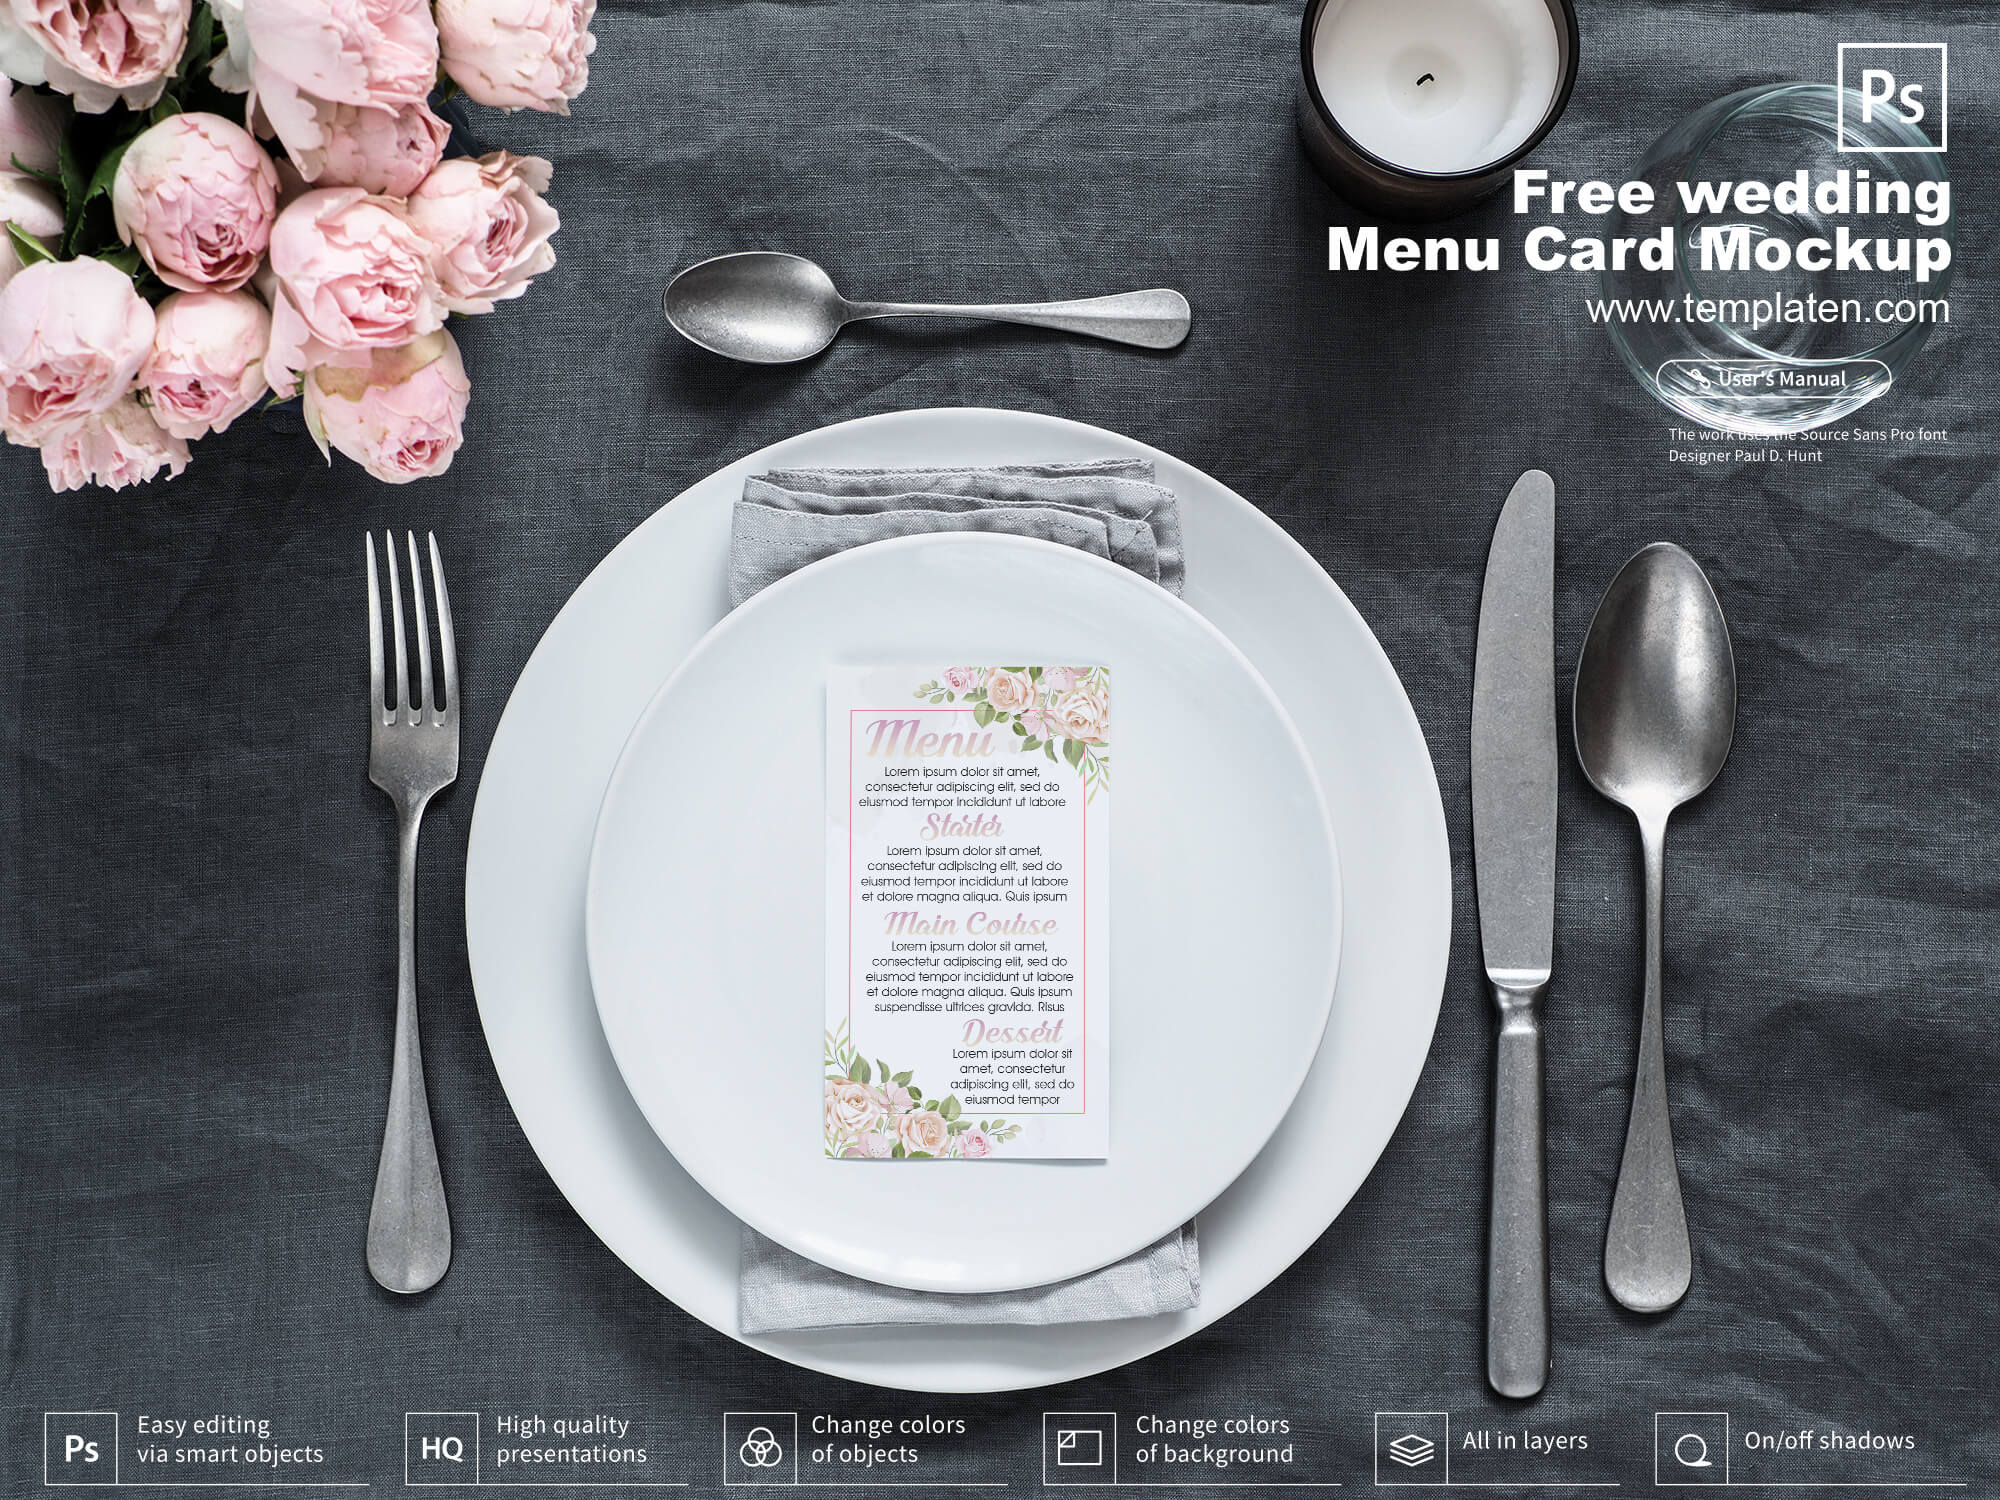 Free Wedding Menu Card Mockup PSD